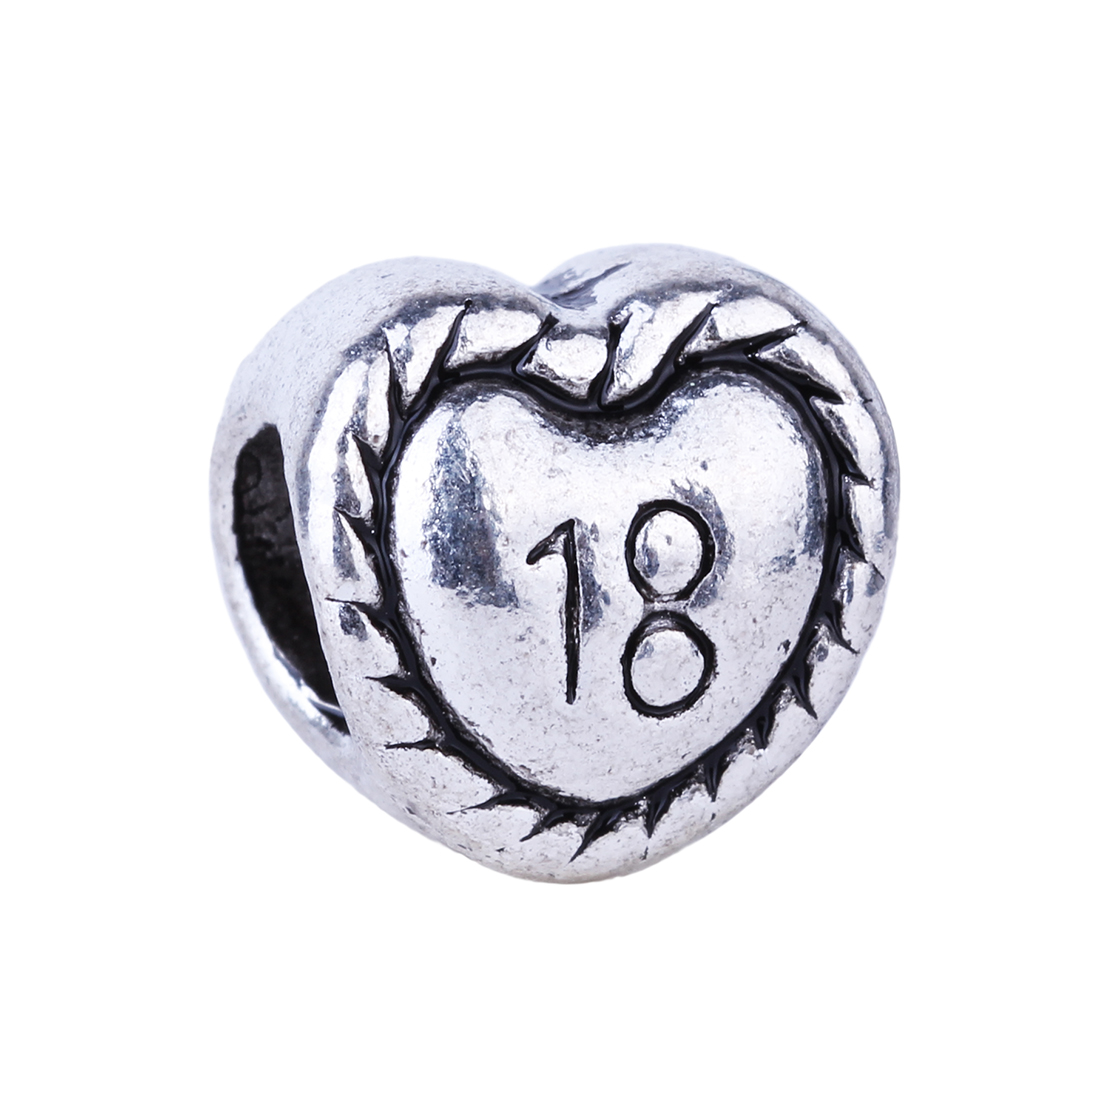 2016 New Number 18 Love Heart Eighteen Years Old Beads Charms European Silver DIY Bead Fit Pandora BIAGI Bracelets & Bangles(China (Mainland))